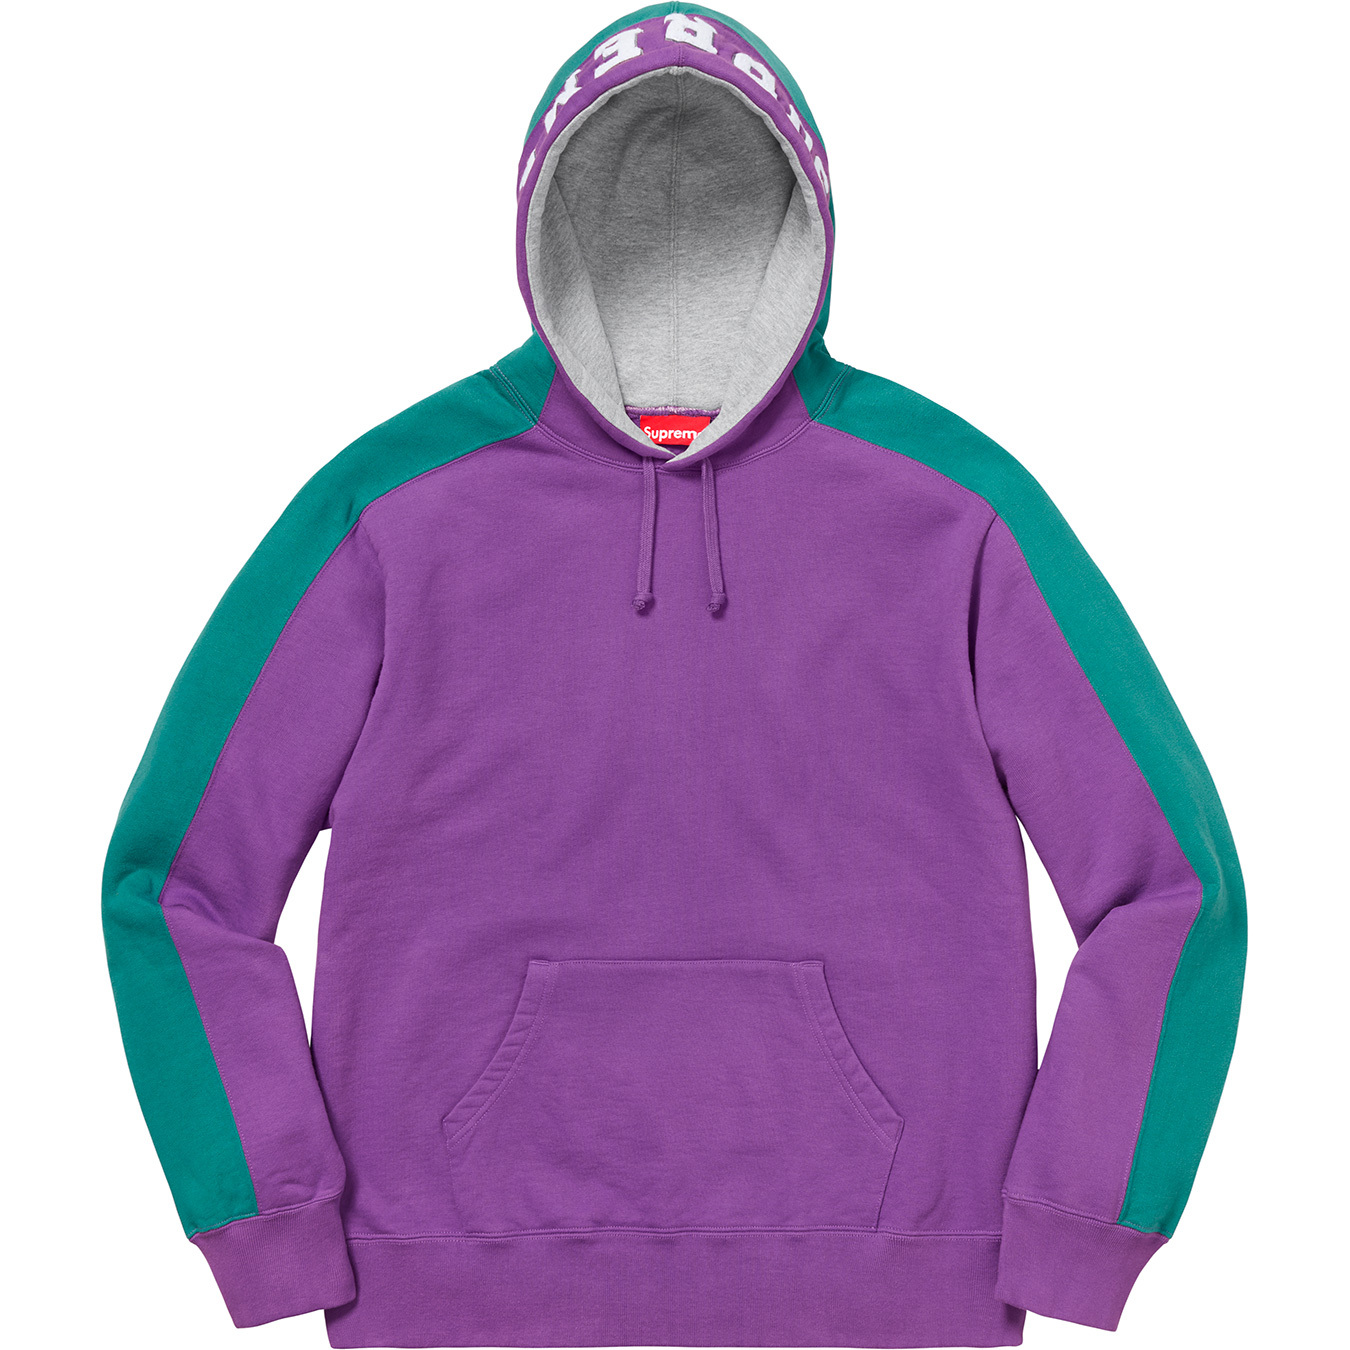 supreme-18aw-fall-winter-paneled-hooded-sweatshirt